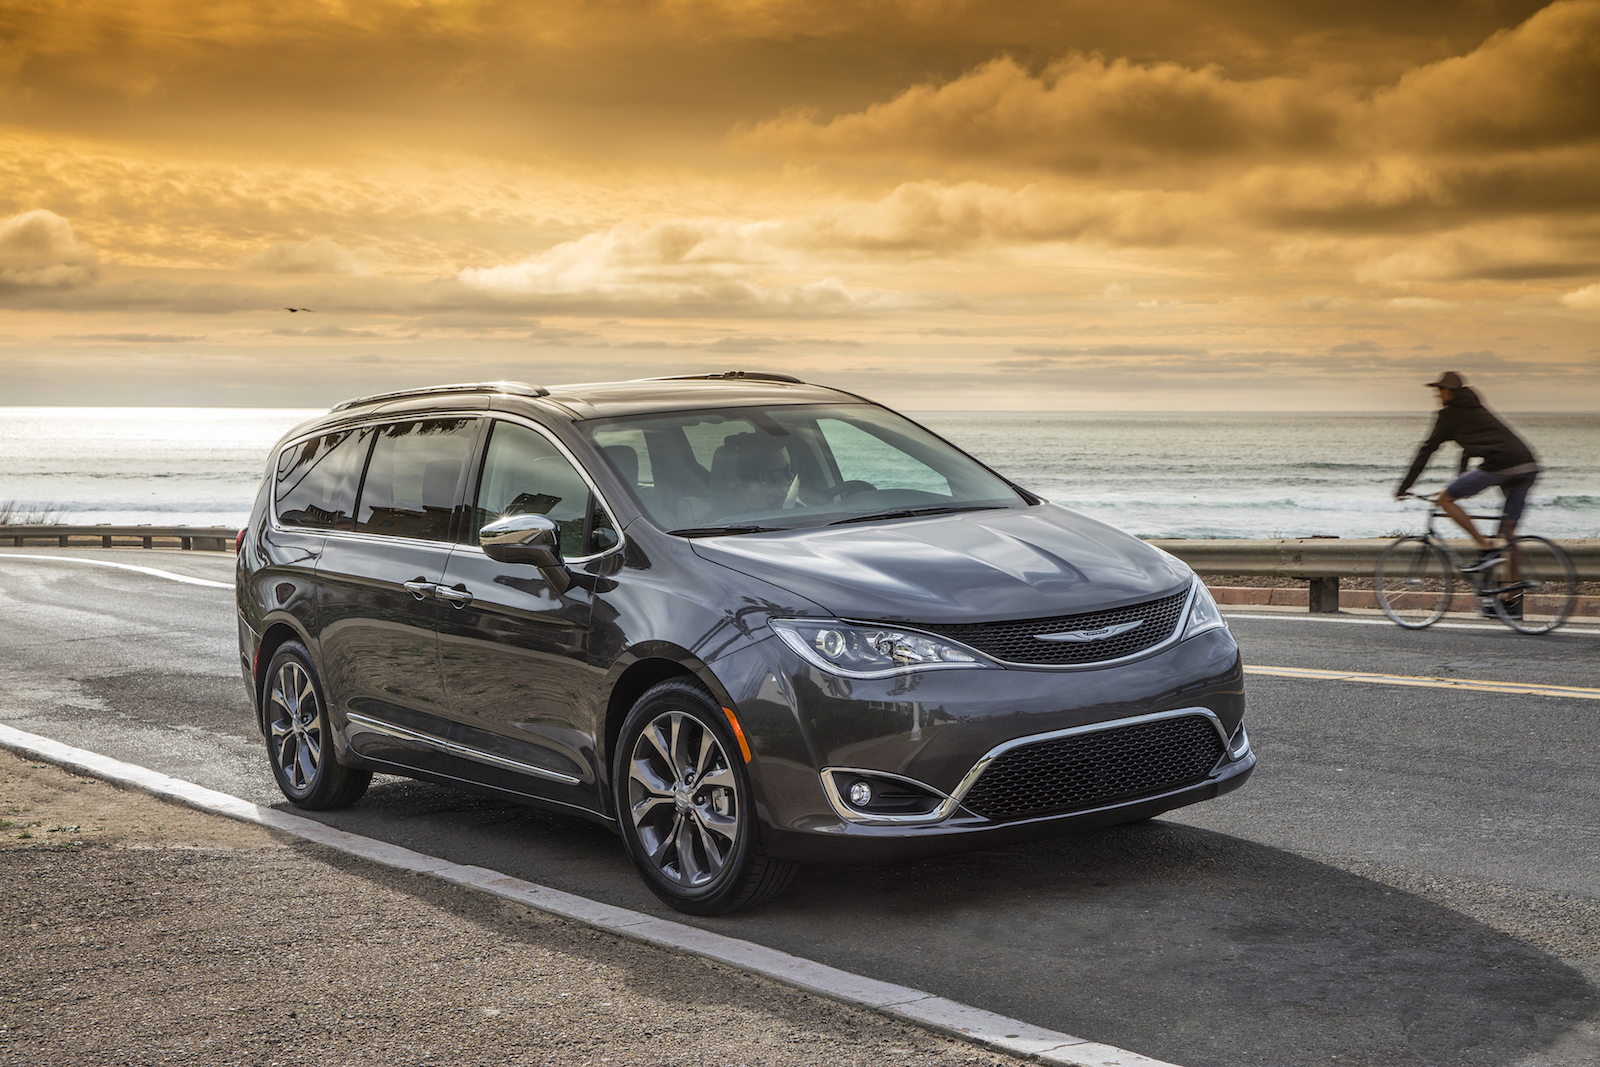 Bmw Of Dallas >> 2017 Chrysler Pacifica Styling Review - The Car Connection